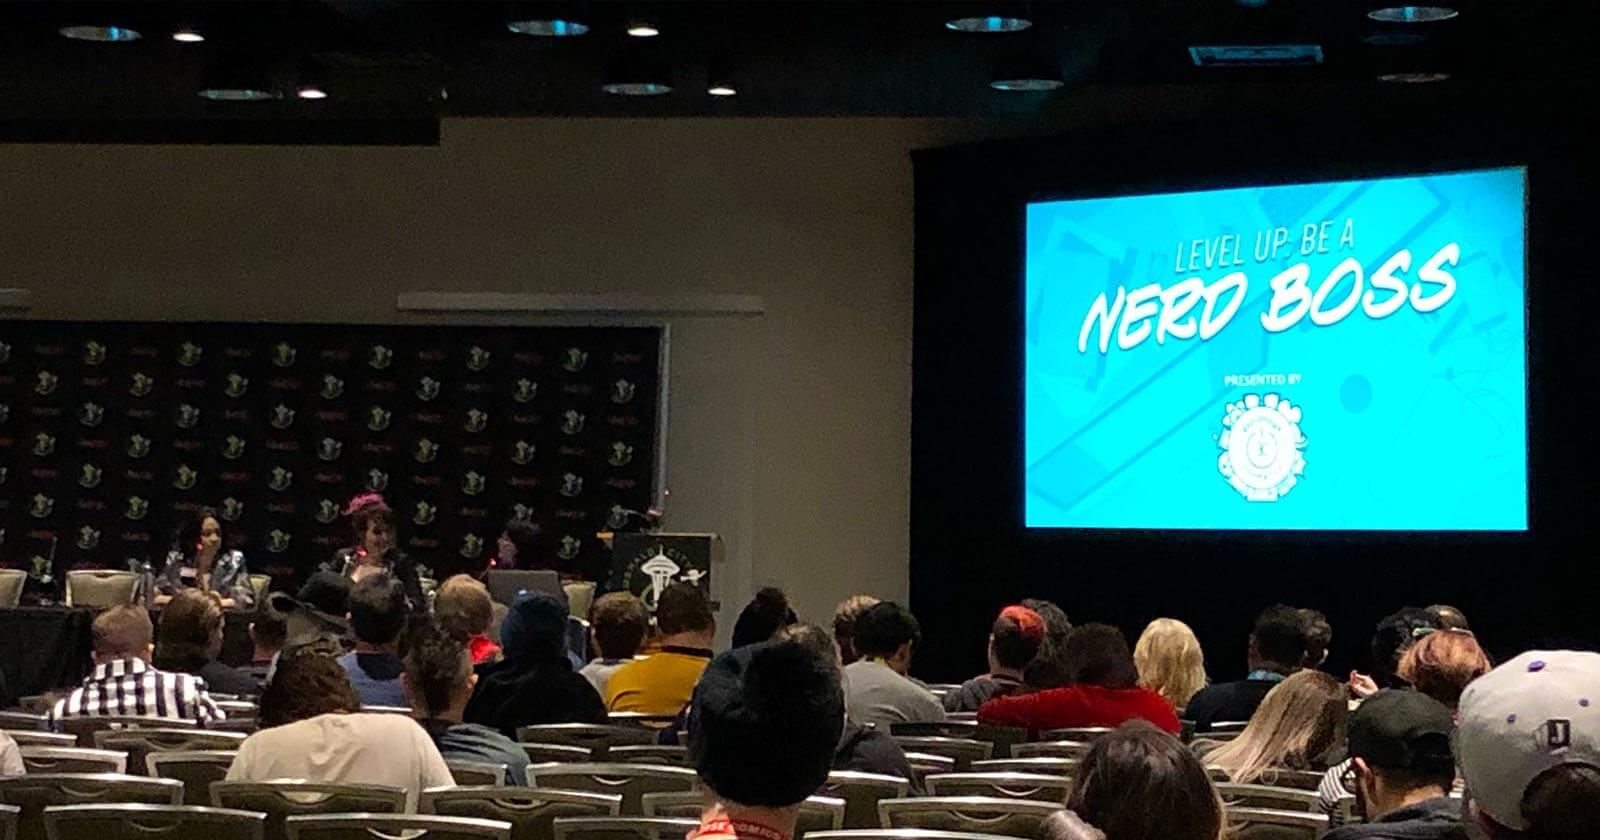 Level Up: Be a Nerd Boss panel